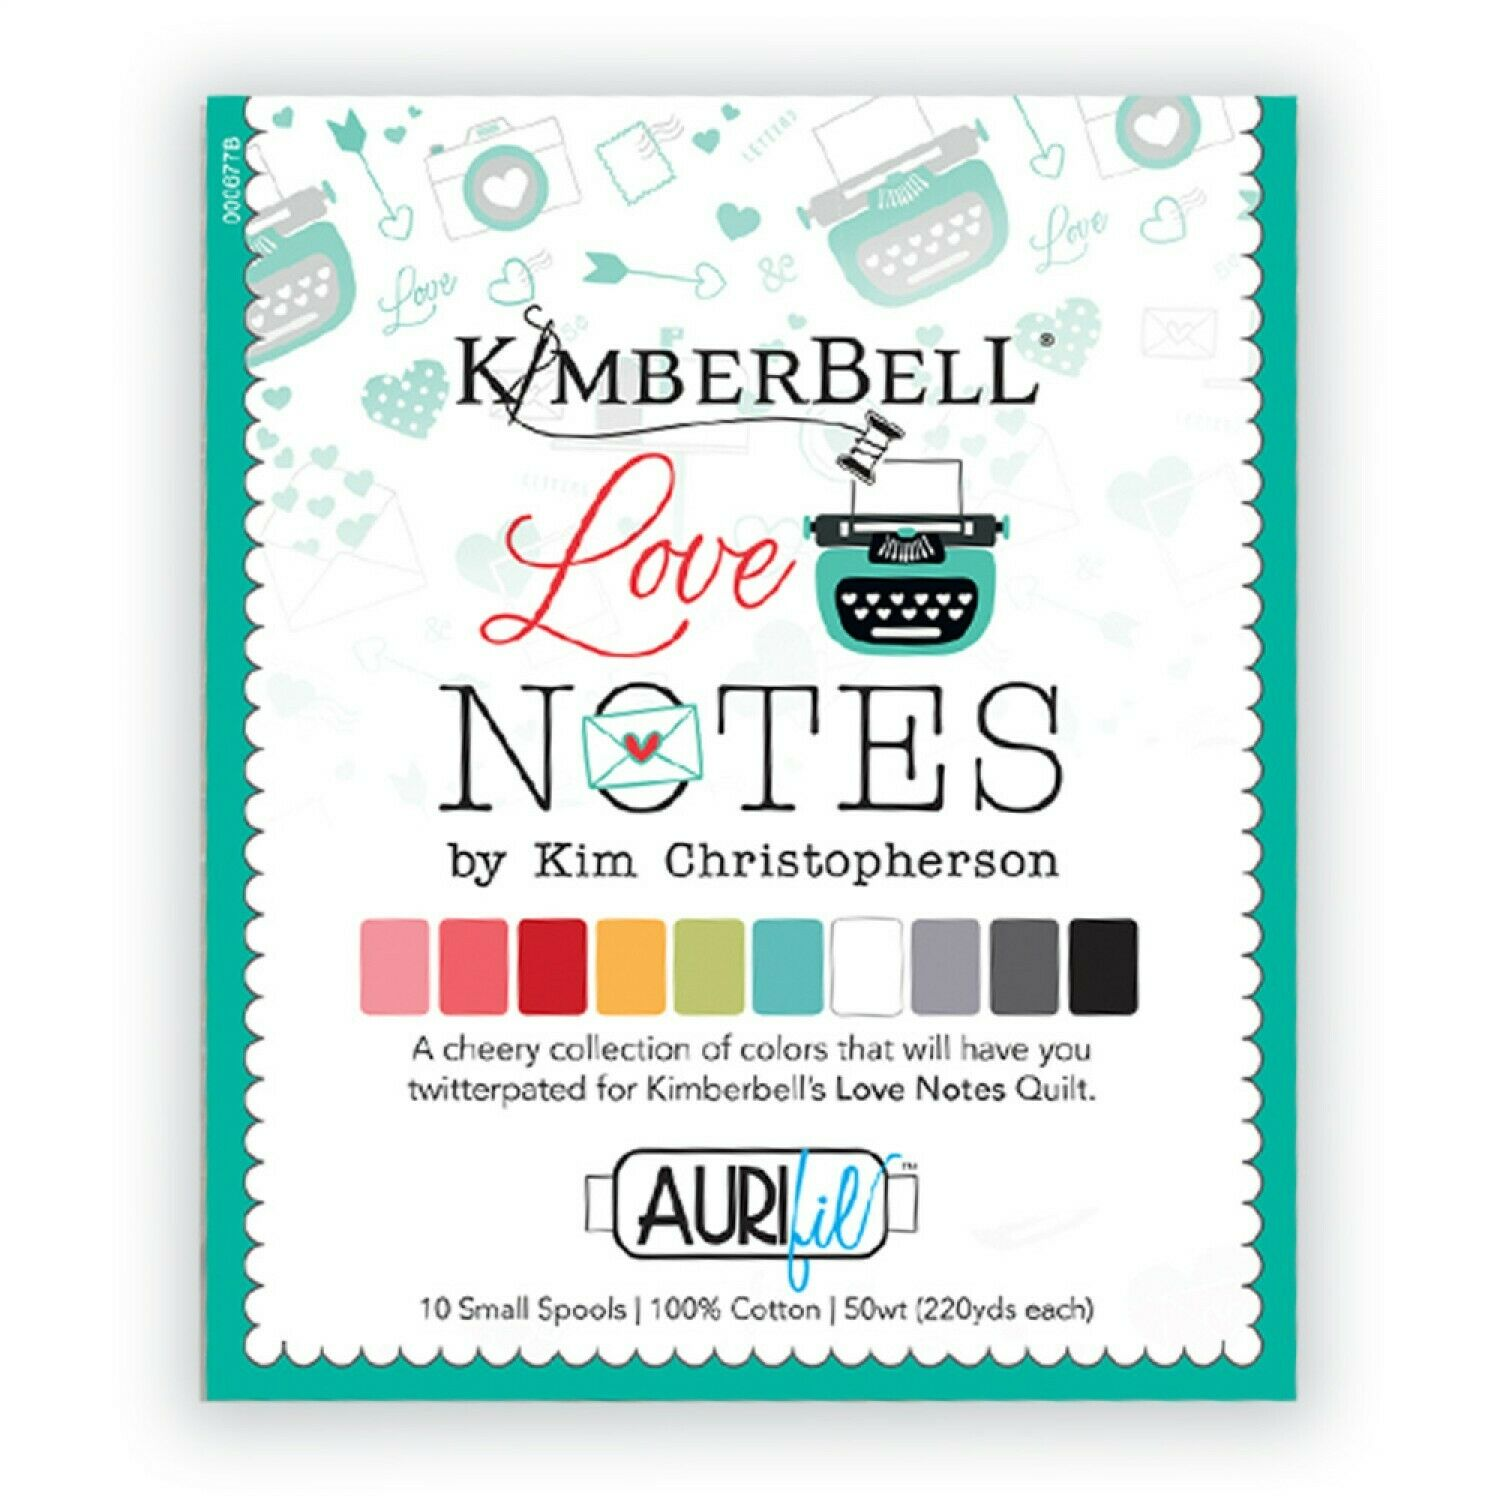 LOVES NOTES SEWING THREAD COLLECTION by Aurifil 10 small spools